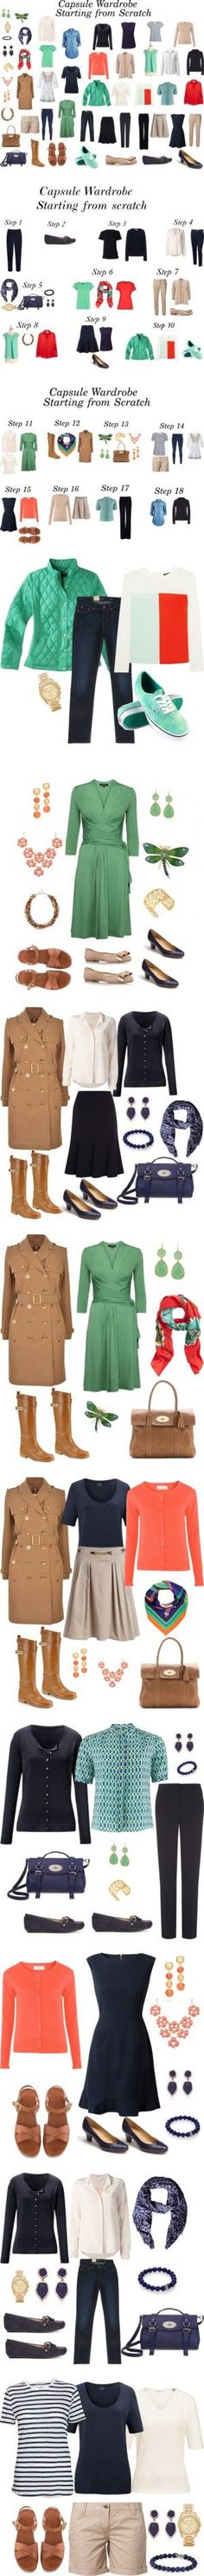 Capsule Wardrobe - Starting from Scratch by cassican on Polyvore featuring moda, Hobbs, Hahn, Levi's, Warehouse, Jigsaw, Wallis, The Row, Raoul and Freda